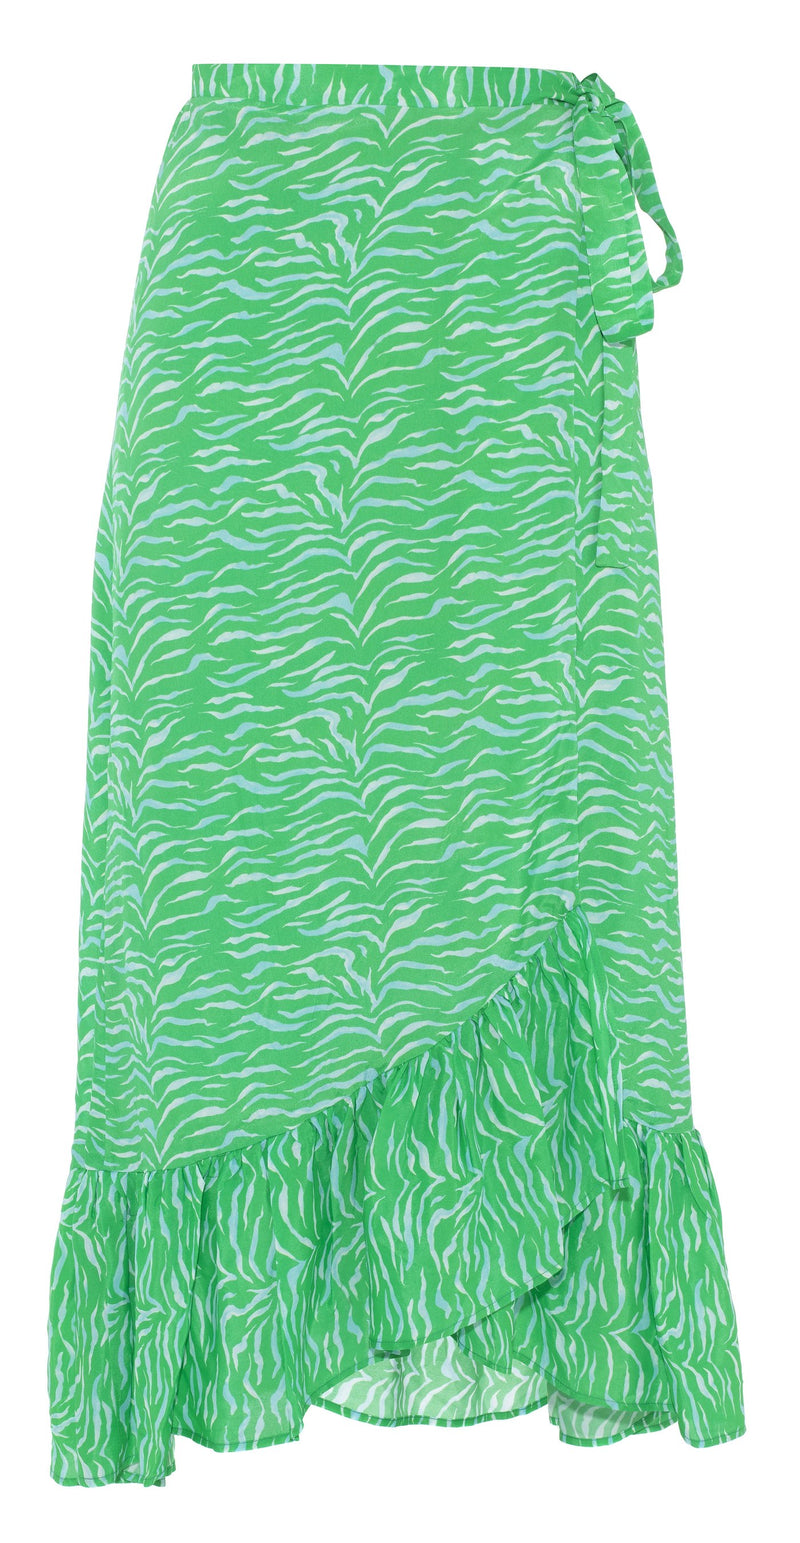 Primrose Park Simi Wrap Skirt - Green Animal